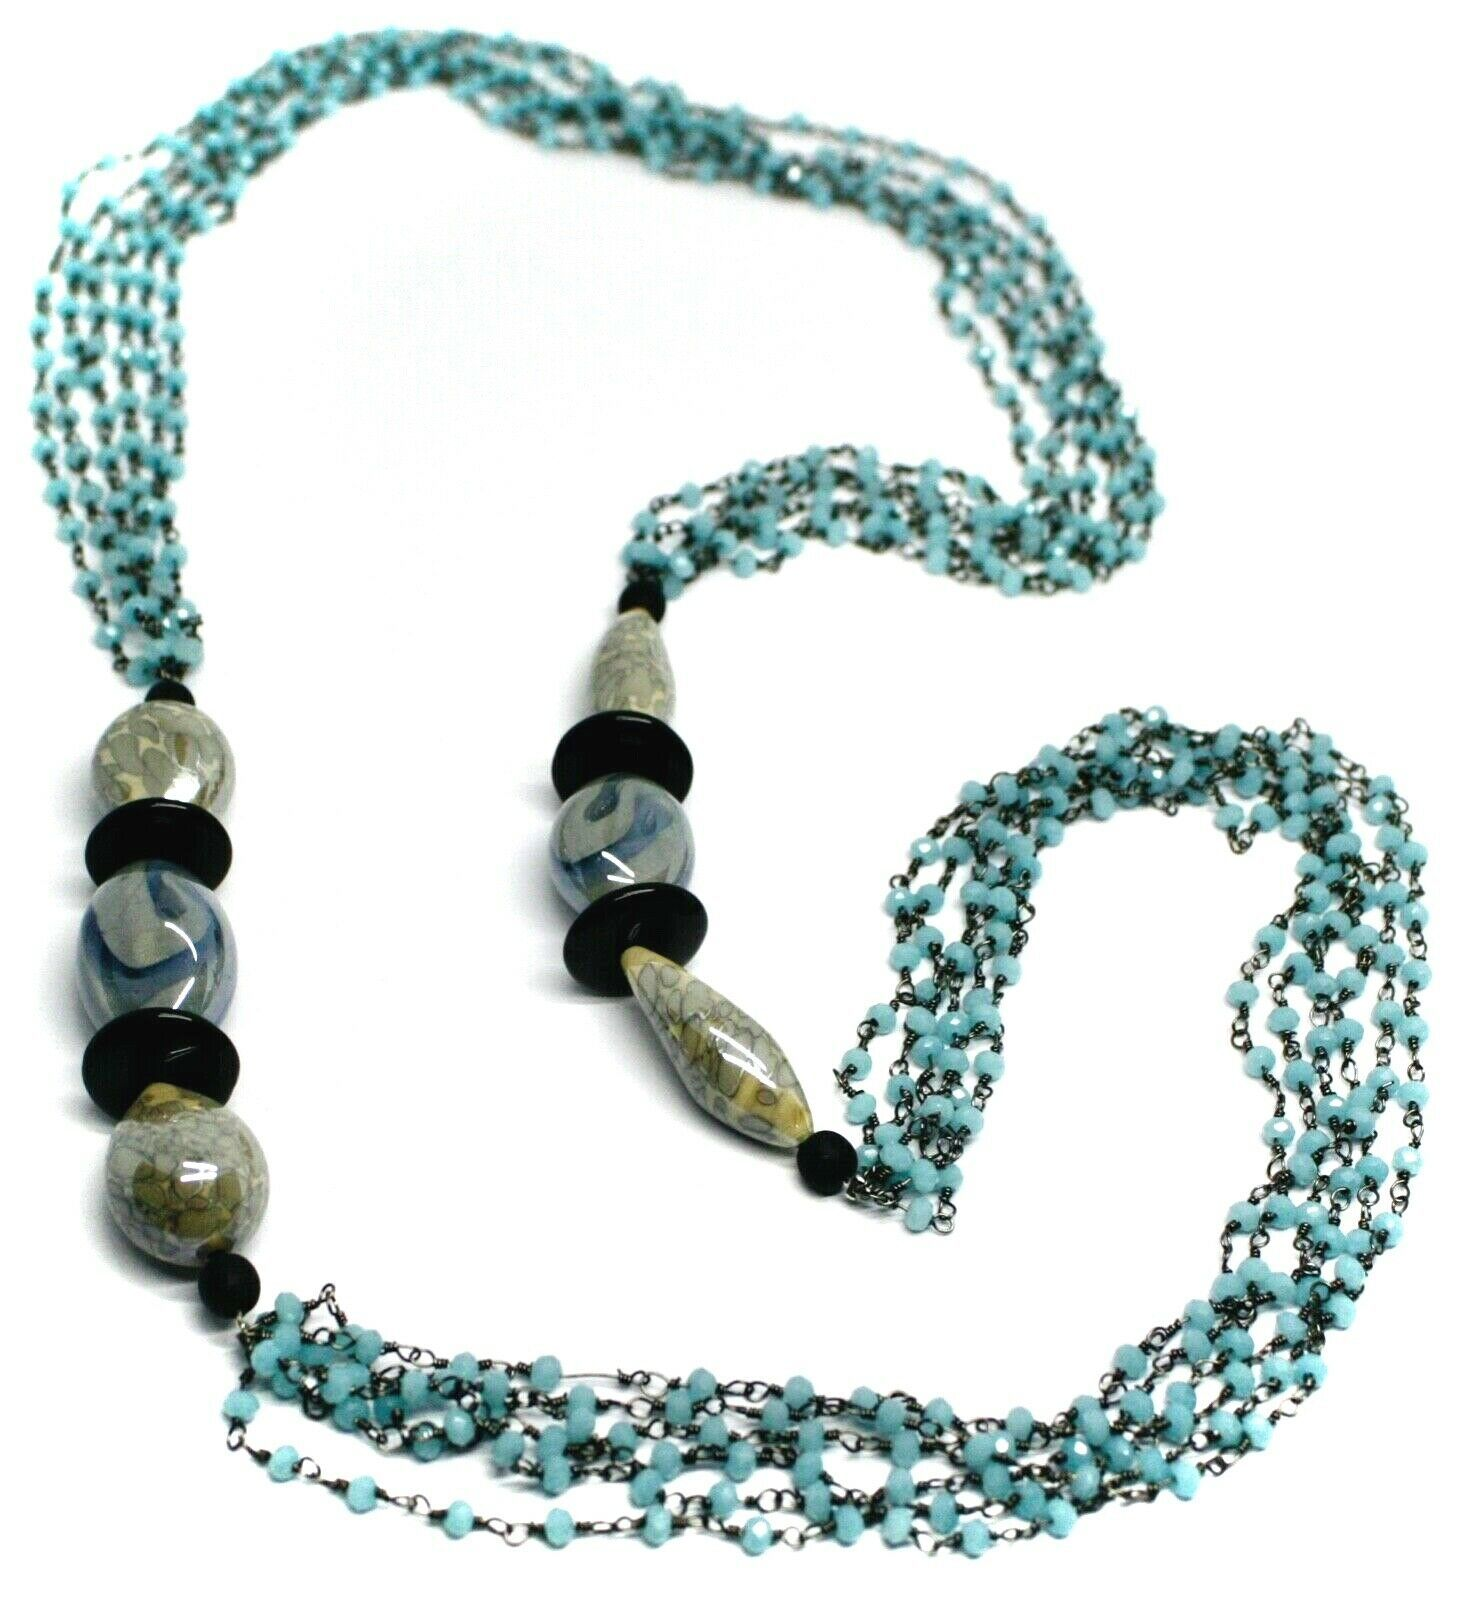 """NECKLACE BLACK, BLUE SPOTTED DROP OVAL MURANO GLASS, MULTI WIRES, 90cm 35"""" LONG"""